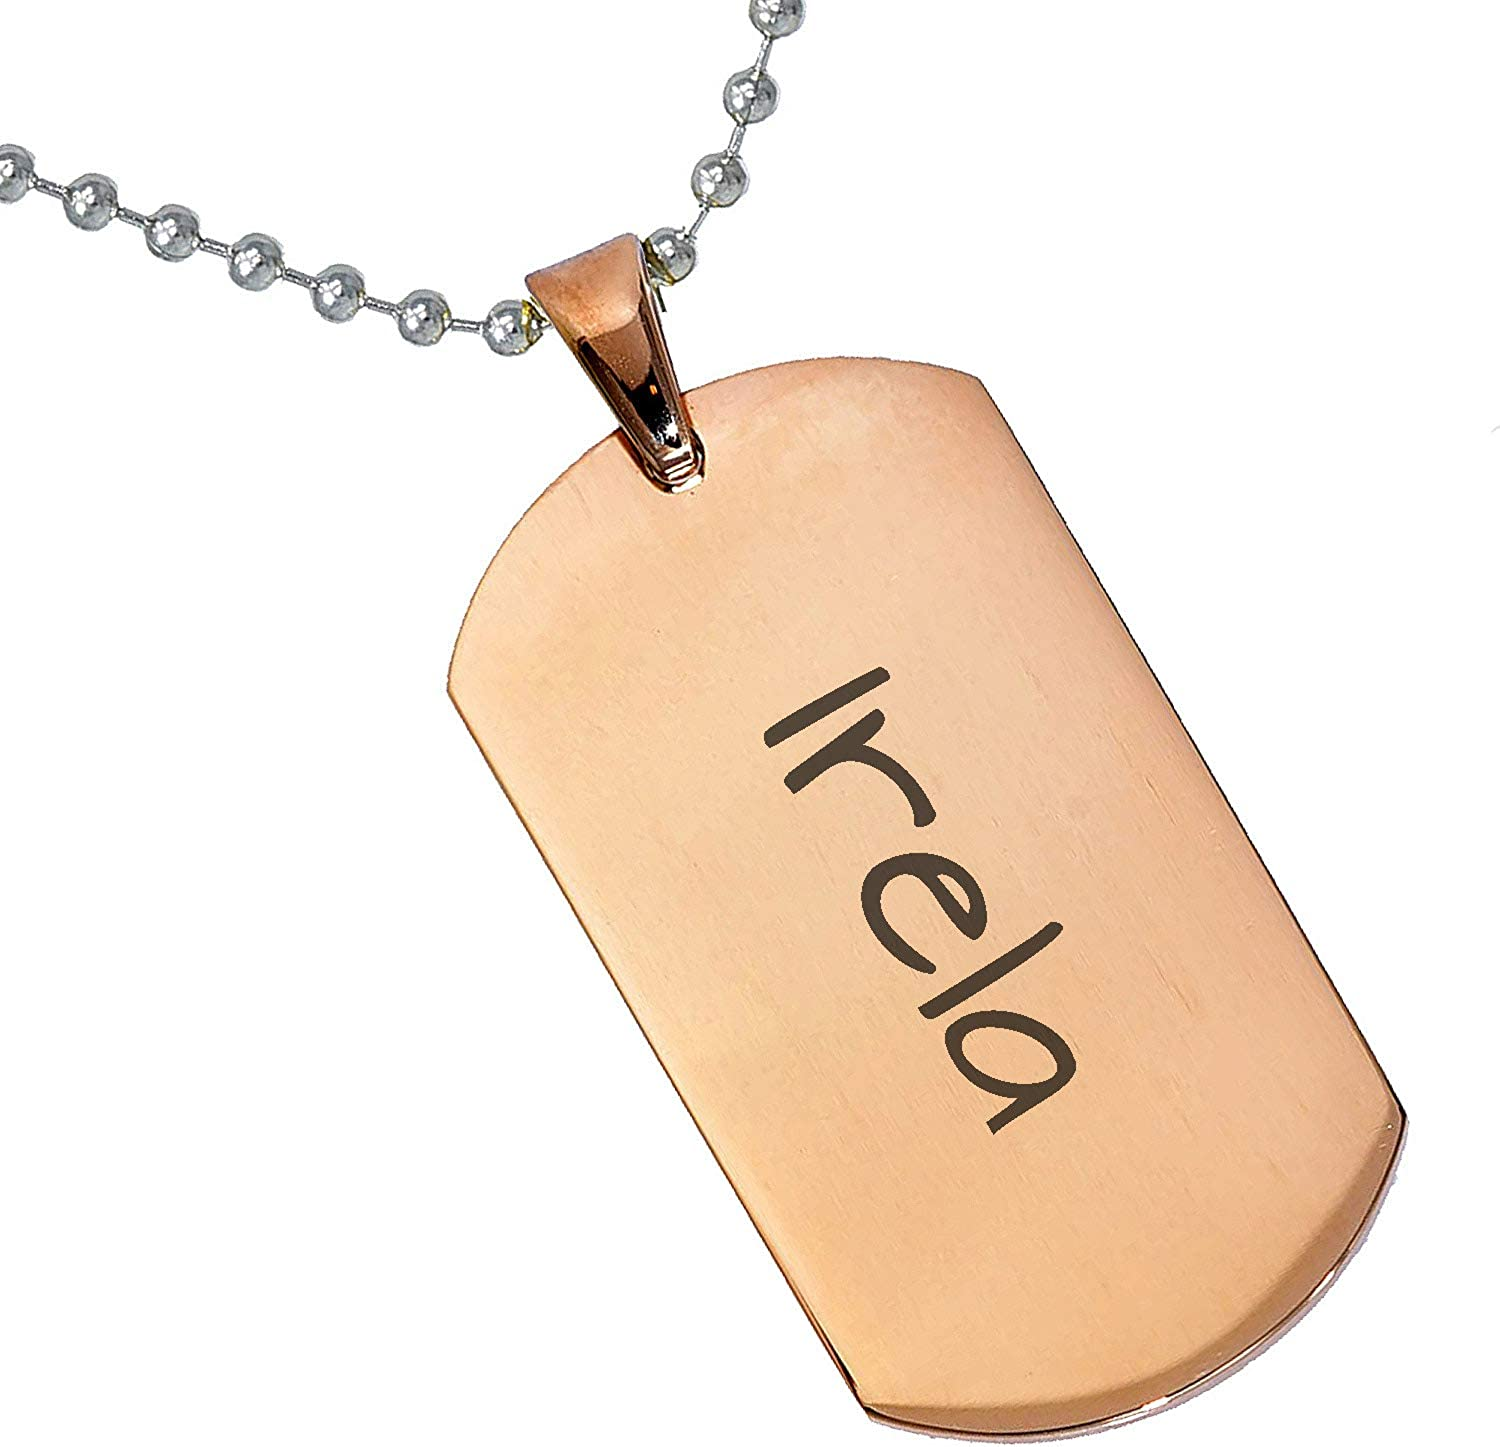 Stainless Steel Silver Gold Black Rose Gold Color Baby Name Irela Engraved Personalized Gifts For Son Daughter Boyfriend Girlfriend Initial Customizable Pendant Necklace Dog Tags 24 Ball Chain